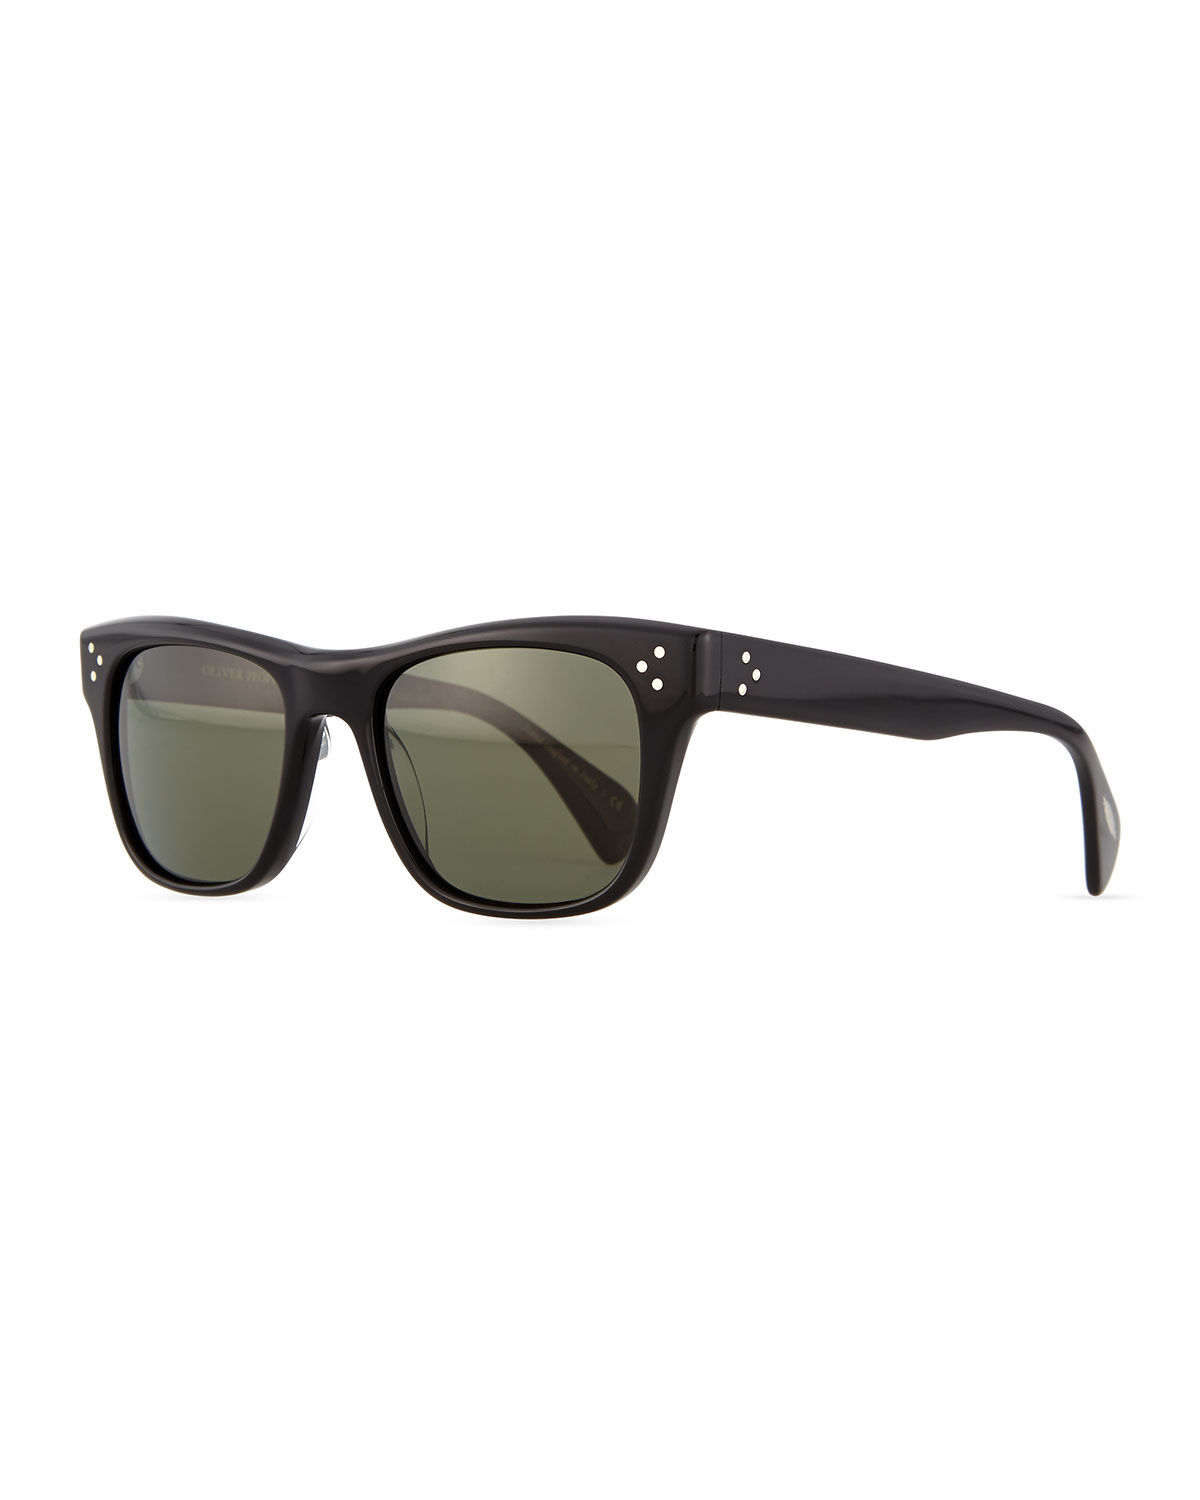 93e2d7a788 Lyst - Oliver peoples Jack Houston Polarized Sunglasses in Black